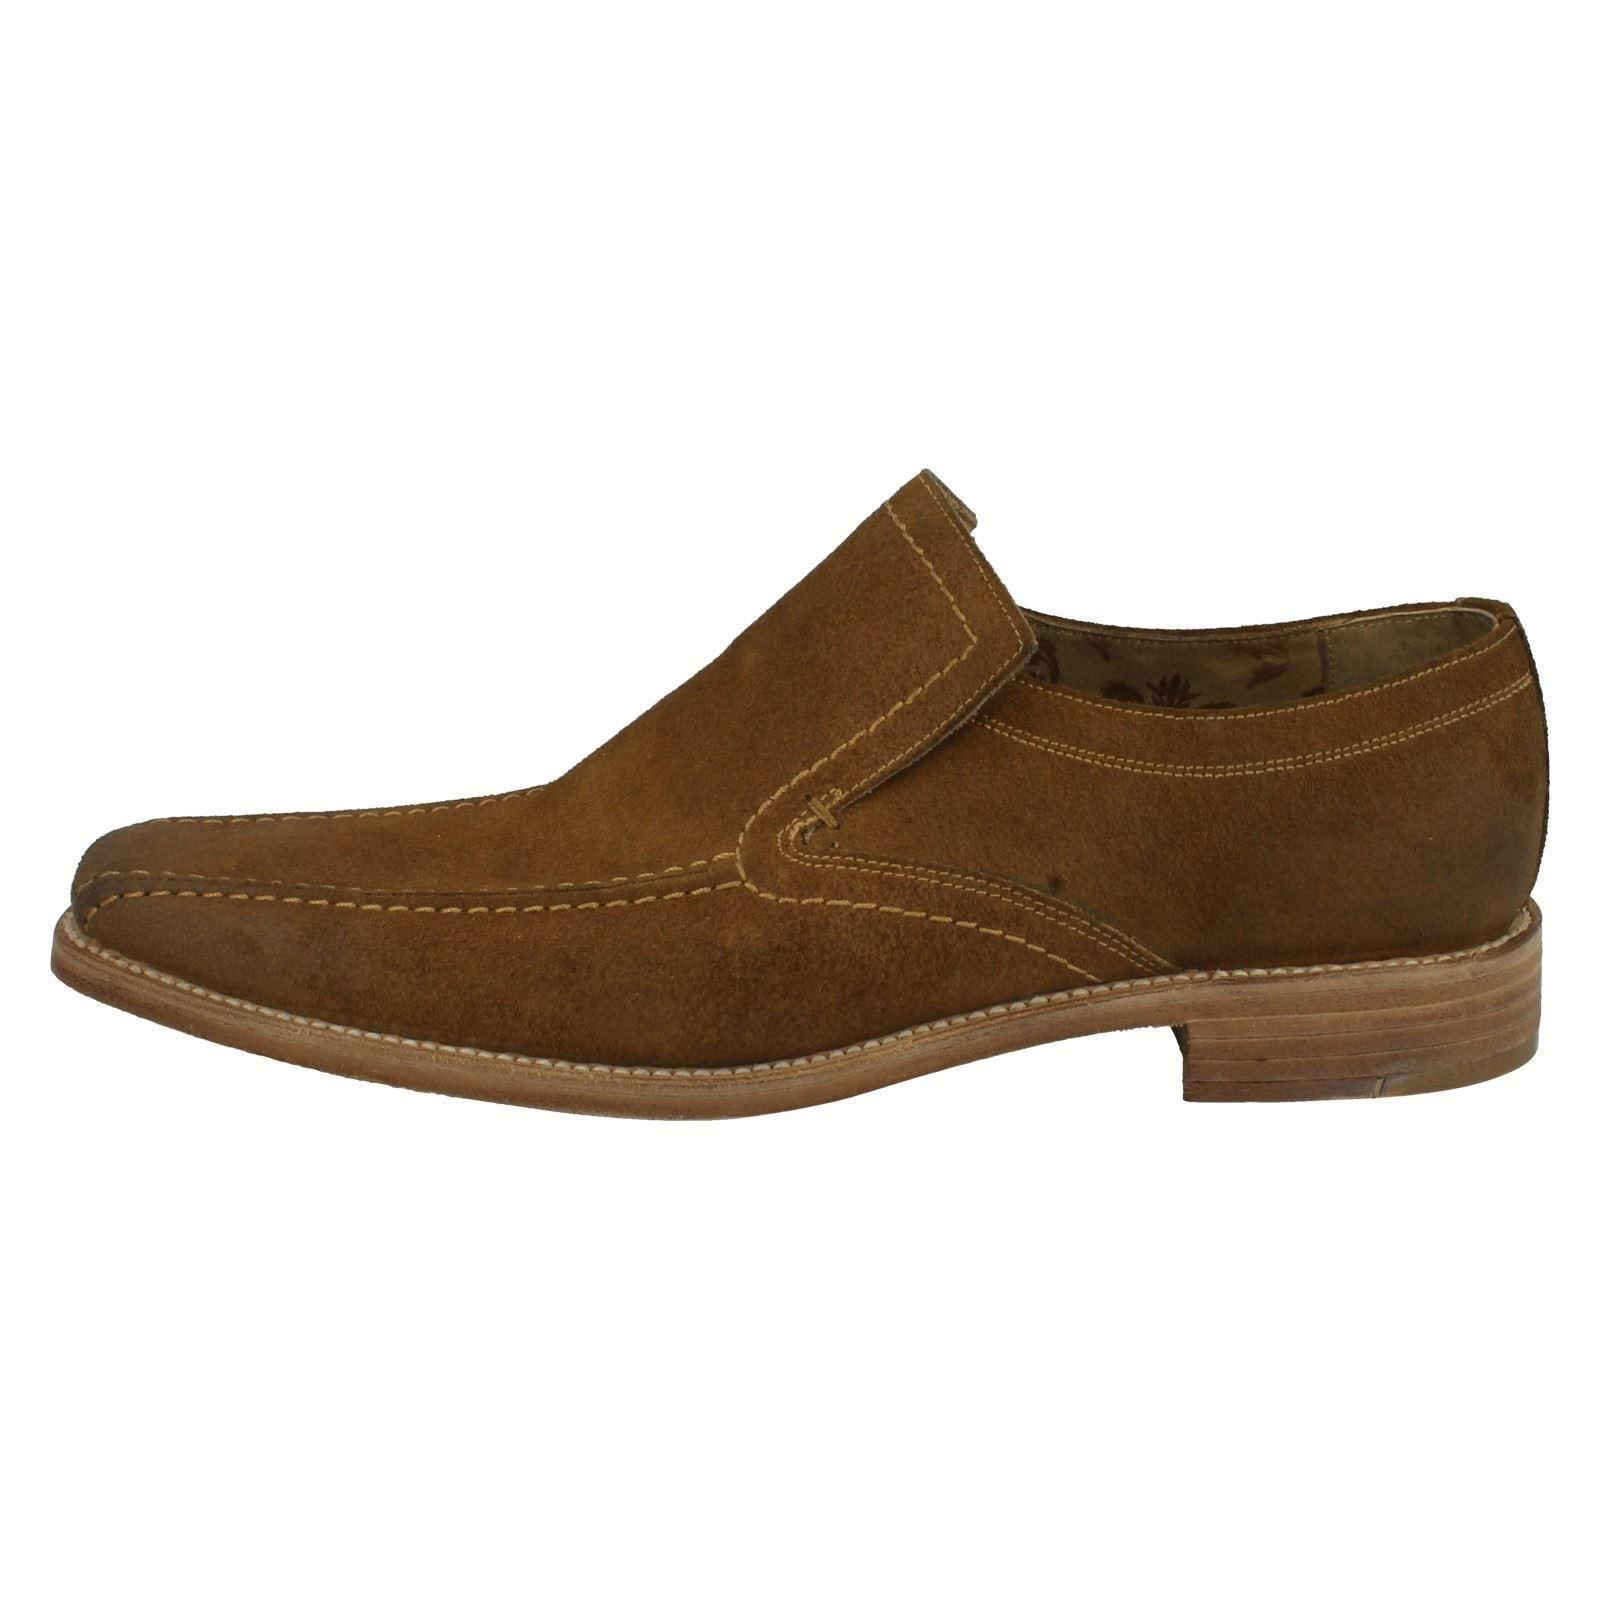 Uomo Loake Formal Suede F Fitting Schuhes the Style - Leon 362c4b